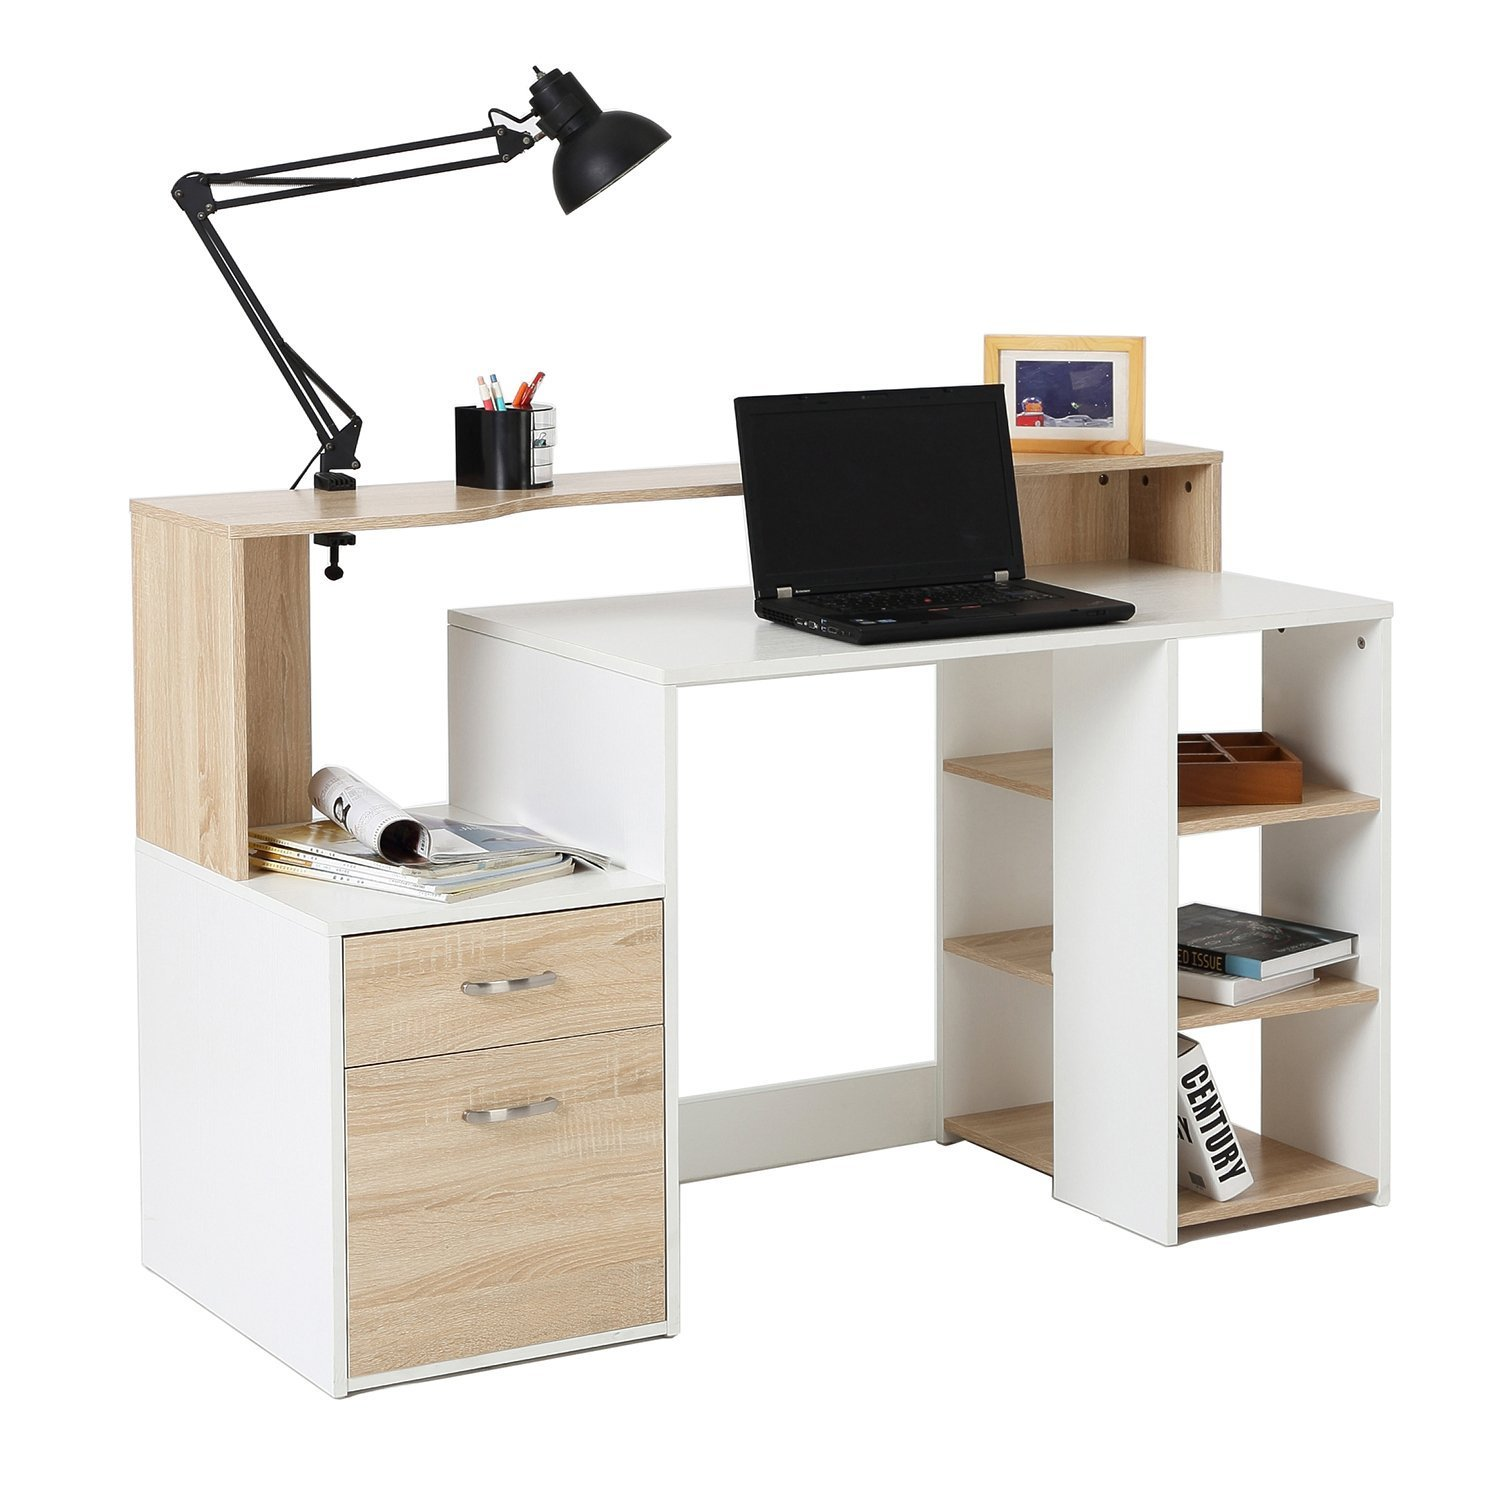 station floating com products shelf shelves ip storage computer work best white with wall mount choice desk home walmart